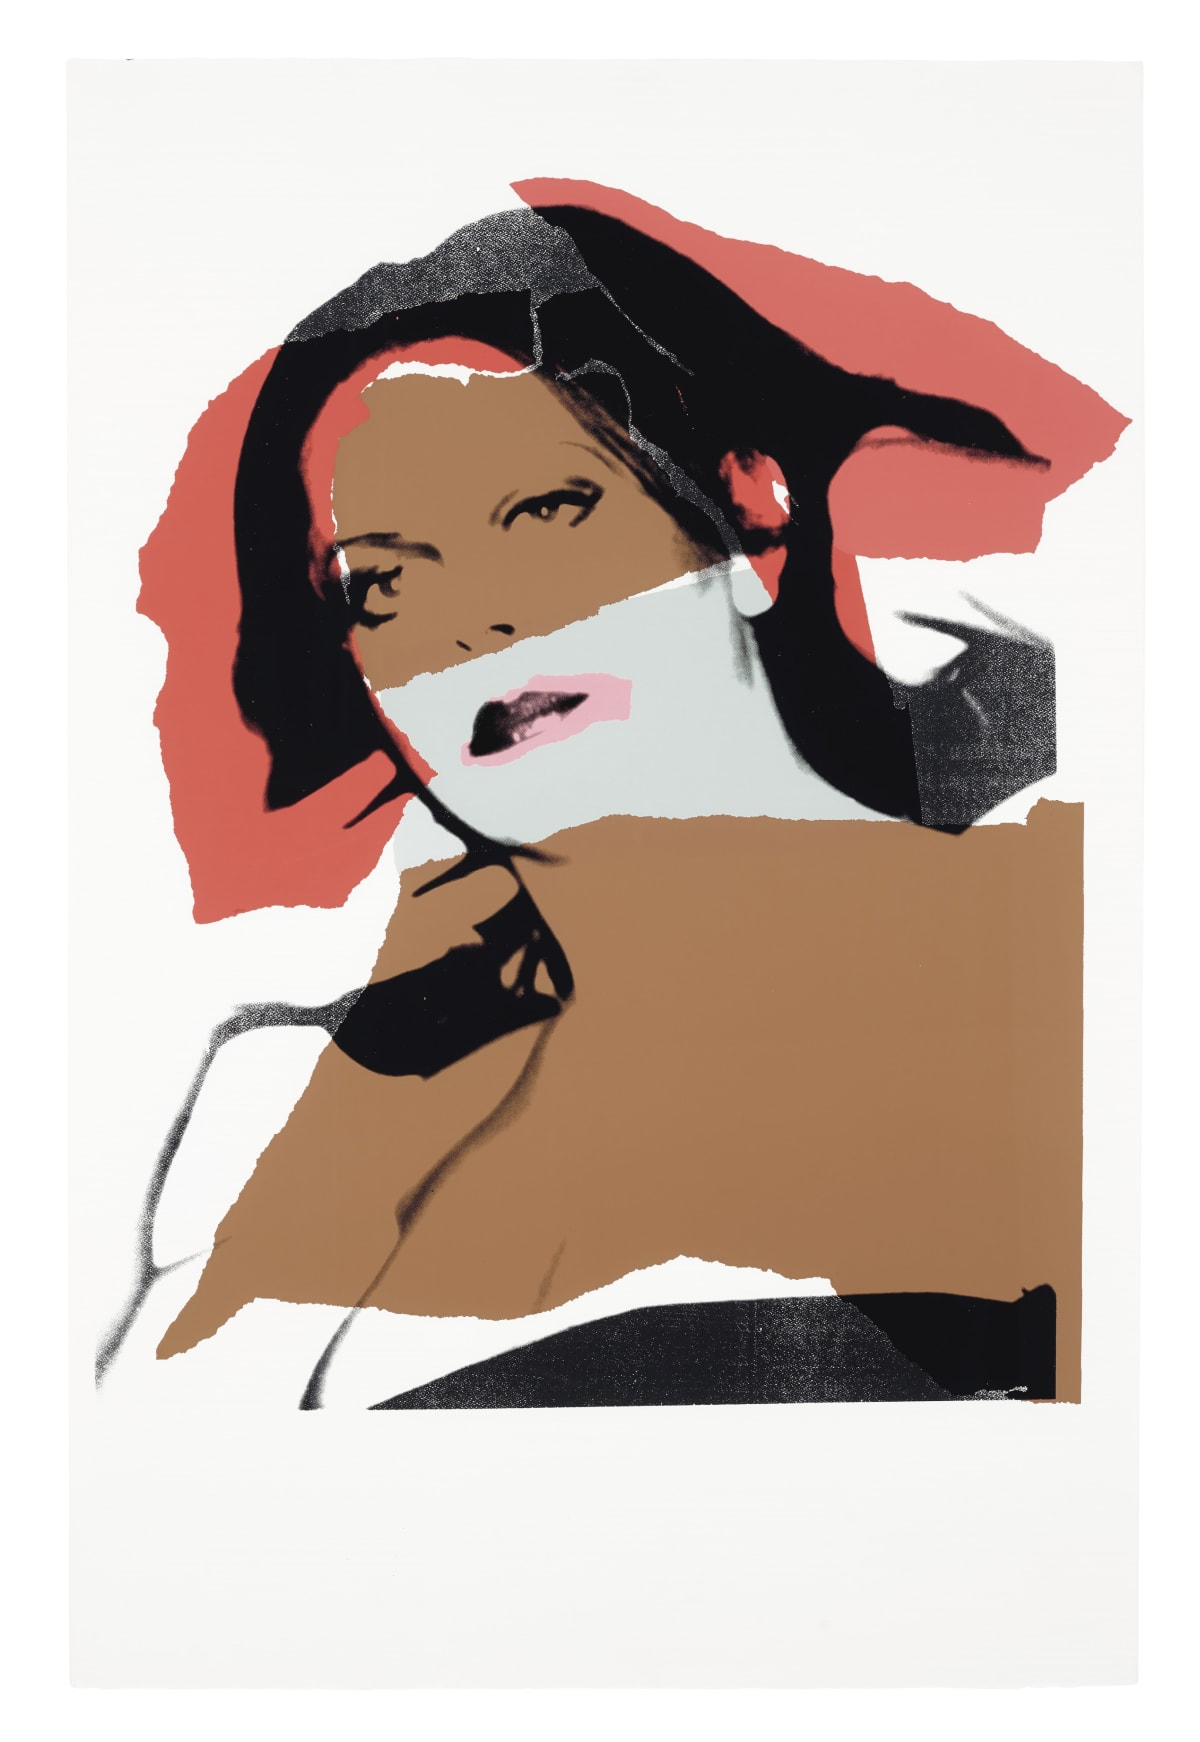 Ladies and Gentlemen, II.134, 1975, by Andy Warhol, Portfolio of Ten Screenprints from an edition of 125, at Coskun Fine Art